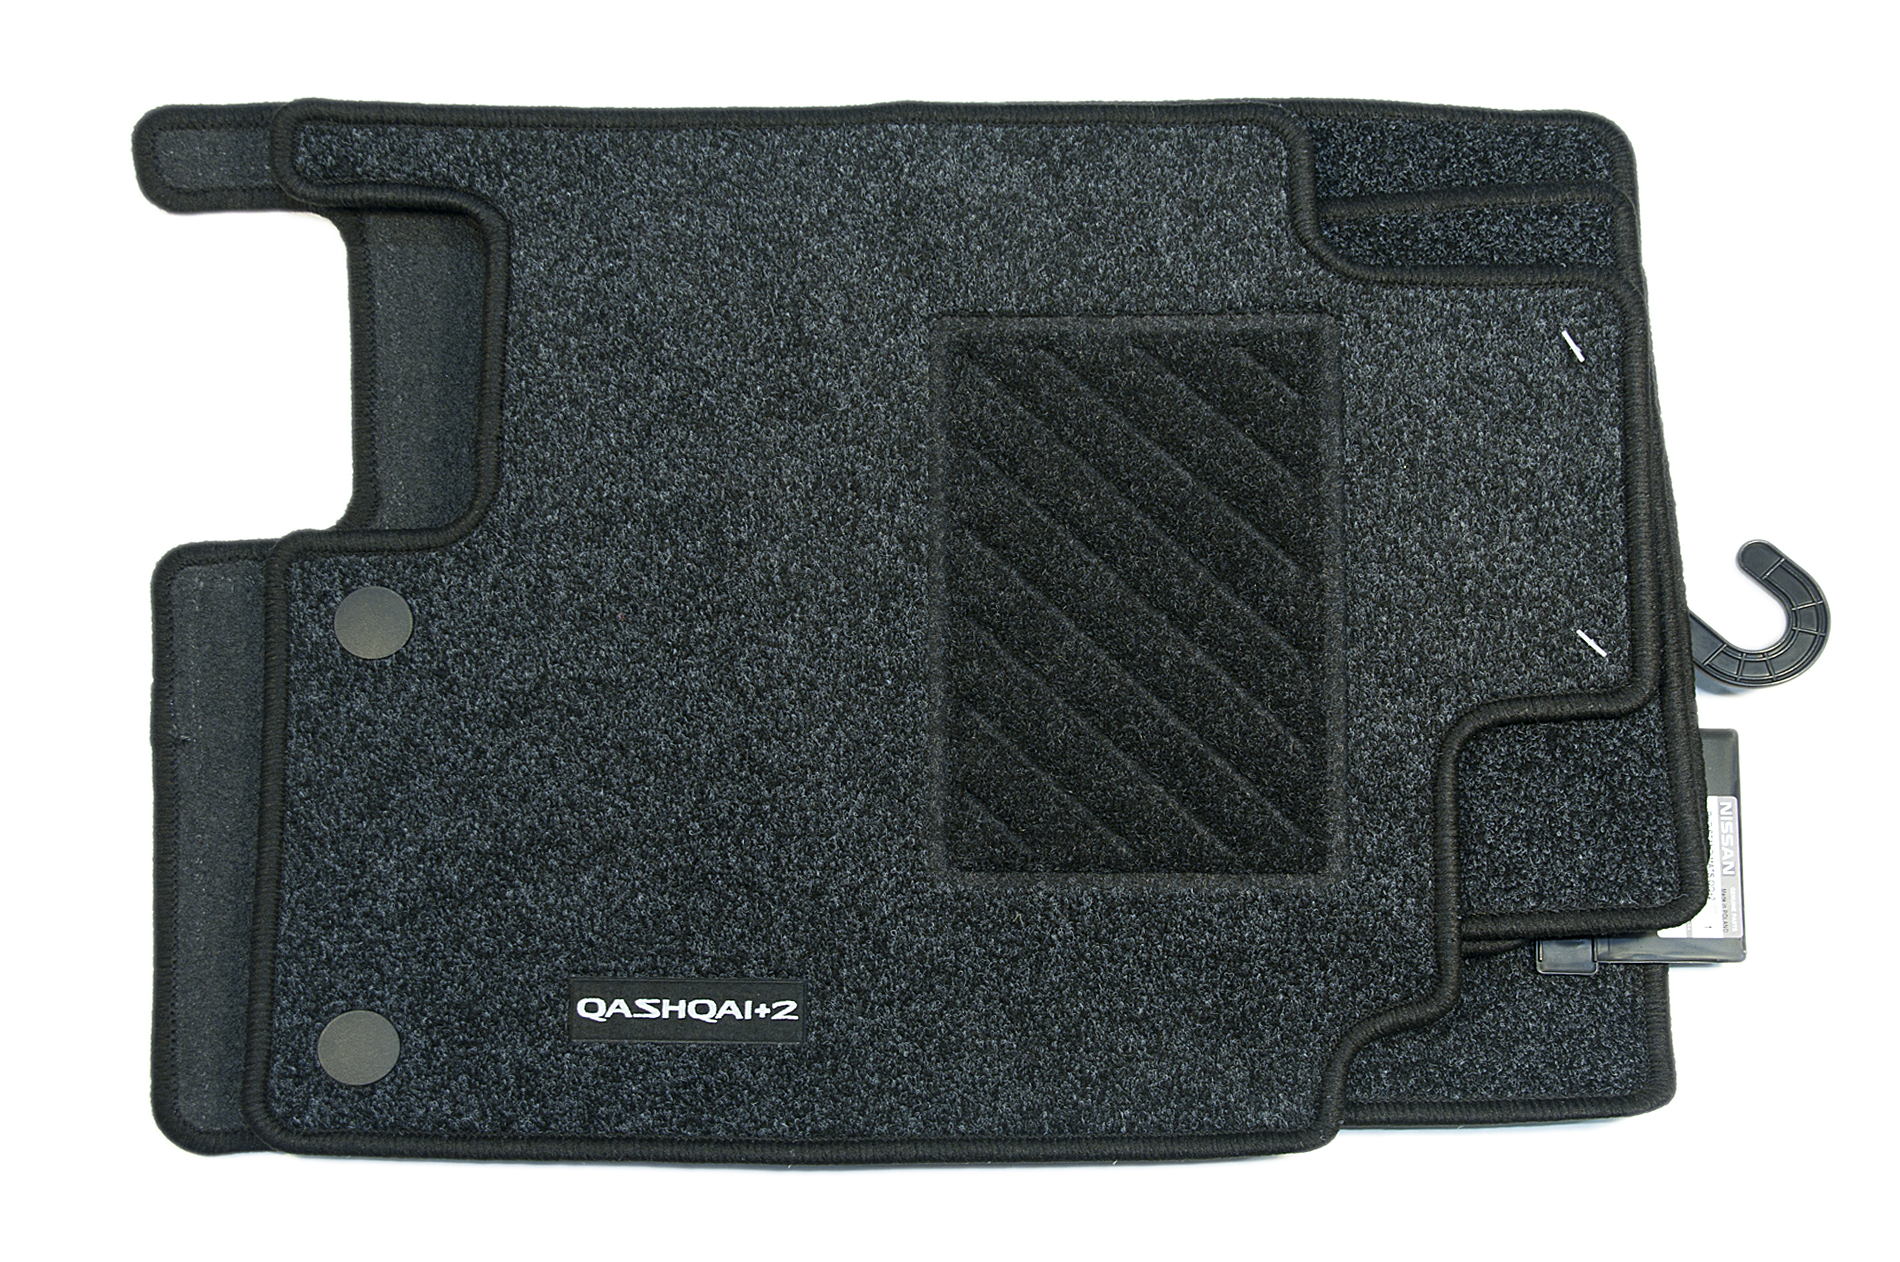 Nissan Qashqai2 Genuine Car Floor Mats Standard Tailored